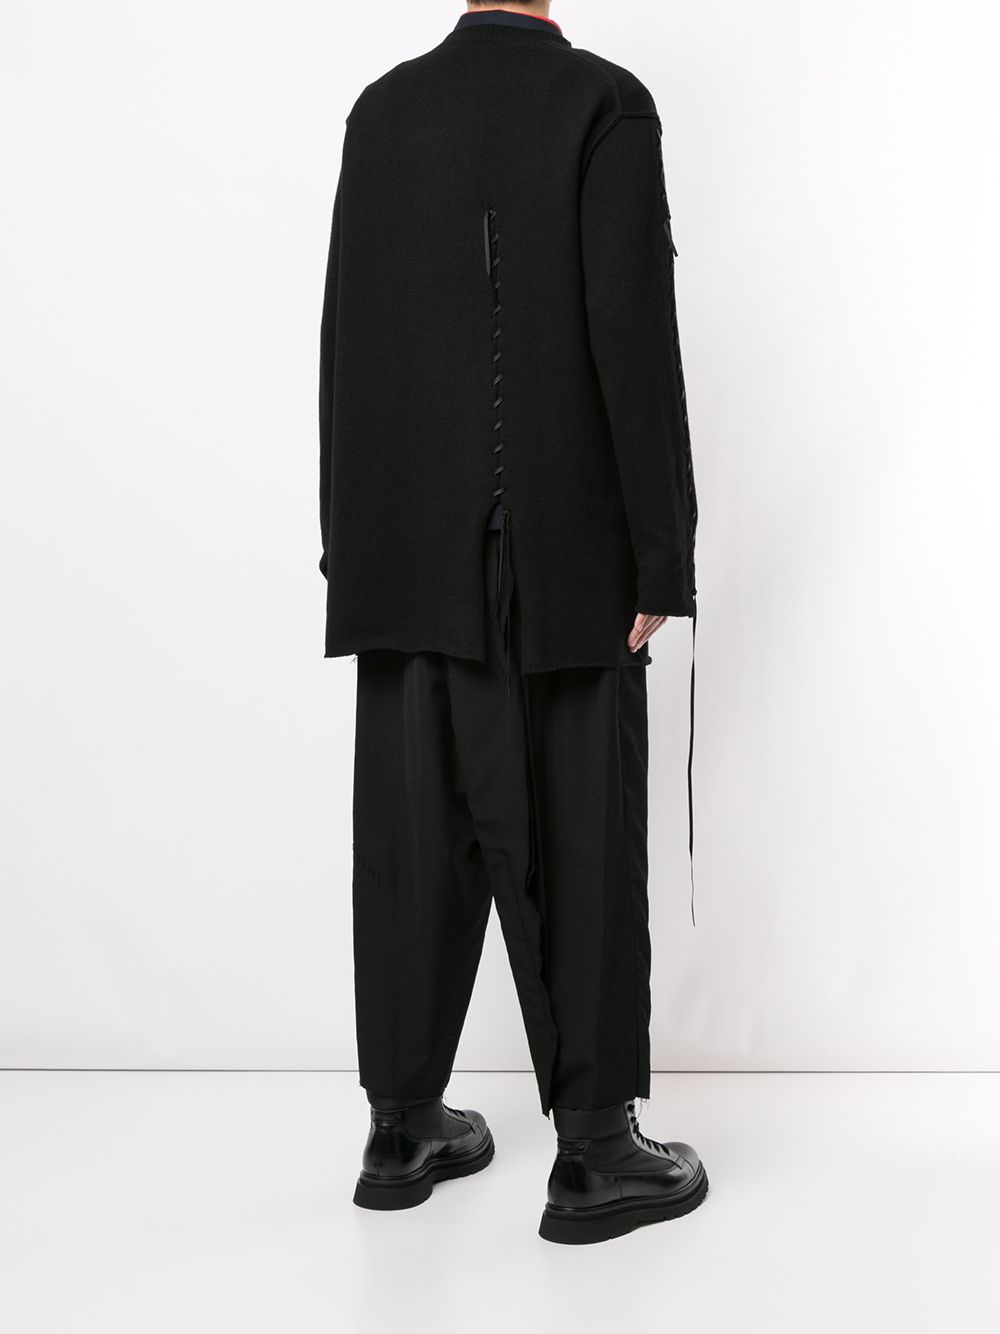 YOHJI YAMAMOTO POUR HOMME MEN LEATHER CORD STRING SWEATER